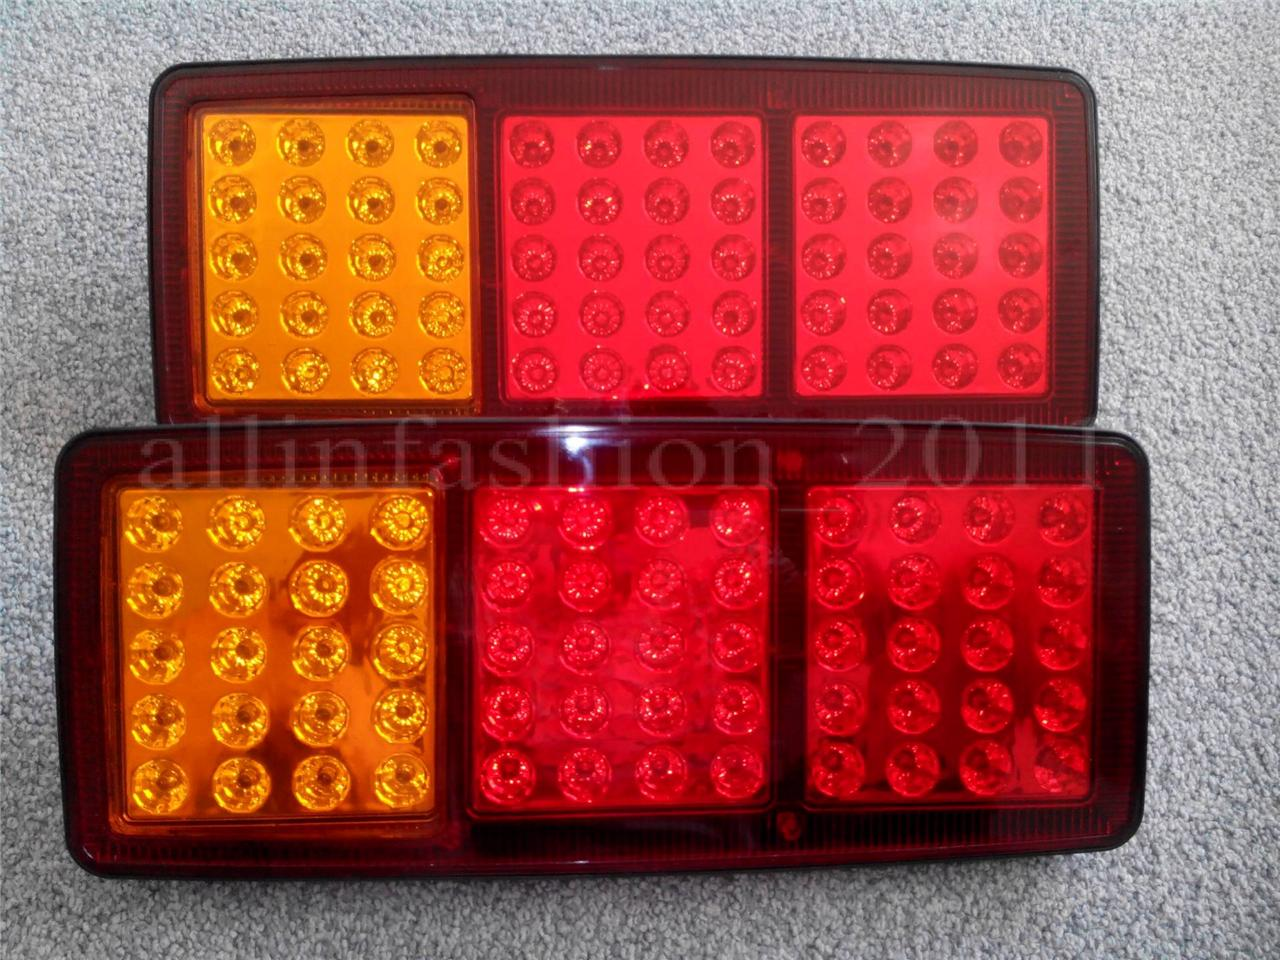 Led Truck Tail Lights >> 2x Led Rear Tail Lights Truck Lorry Camper Trailer Tipper Chassis Van 12v 24v Ebay